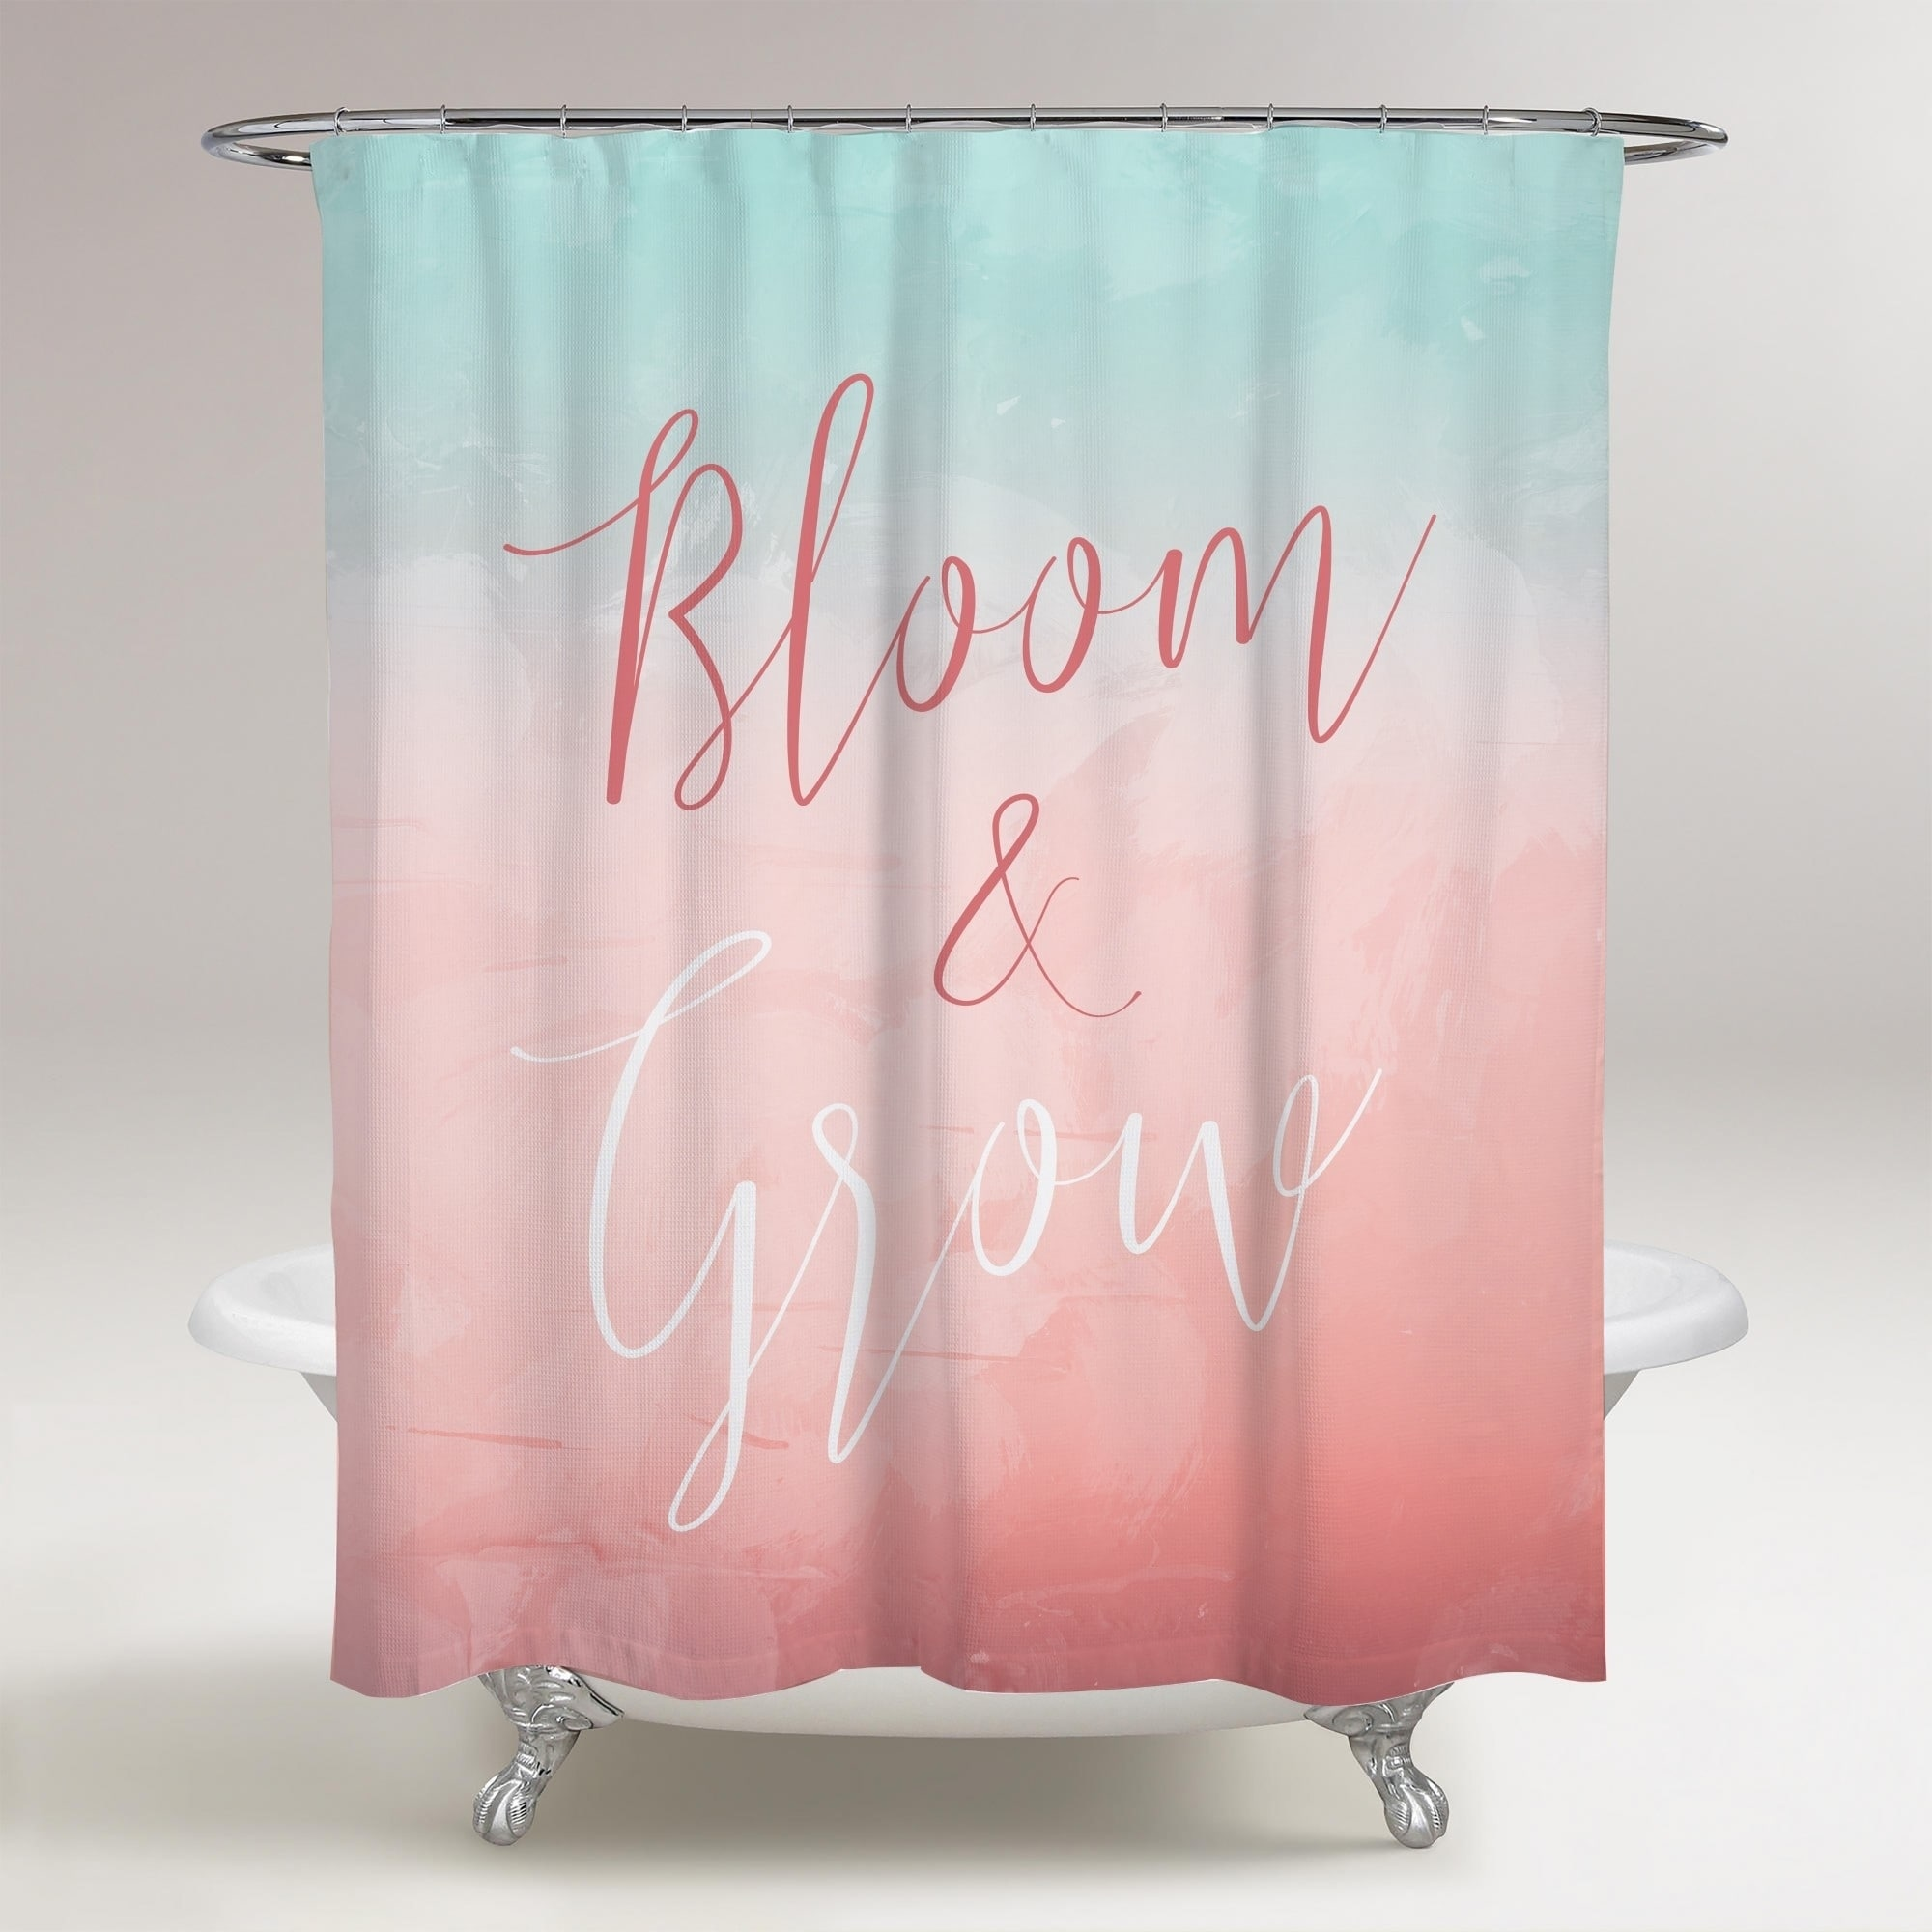 oliver gal bloom and grow pastel typography and quotes decorative shower curtain beauty quotes and sayings pink blue